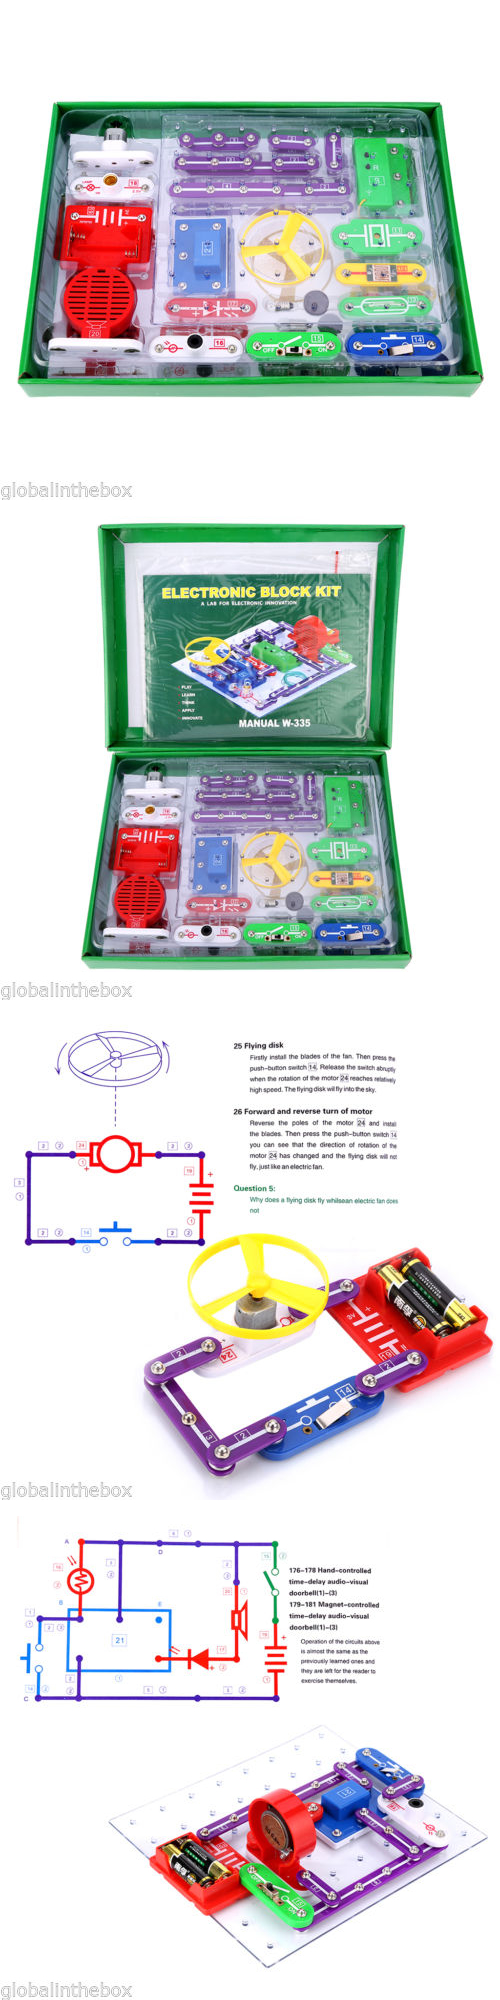 Electronics And Electricity 158698 Snap Circuits Children Toy Jr 100 Kit Discovery Science Educational Gift